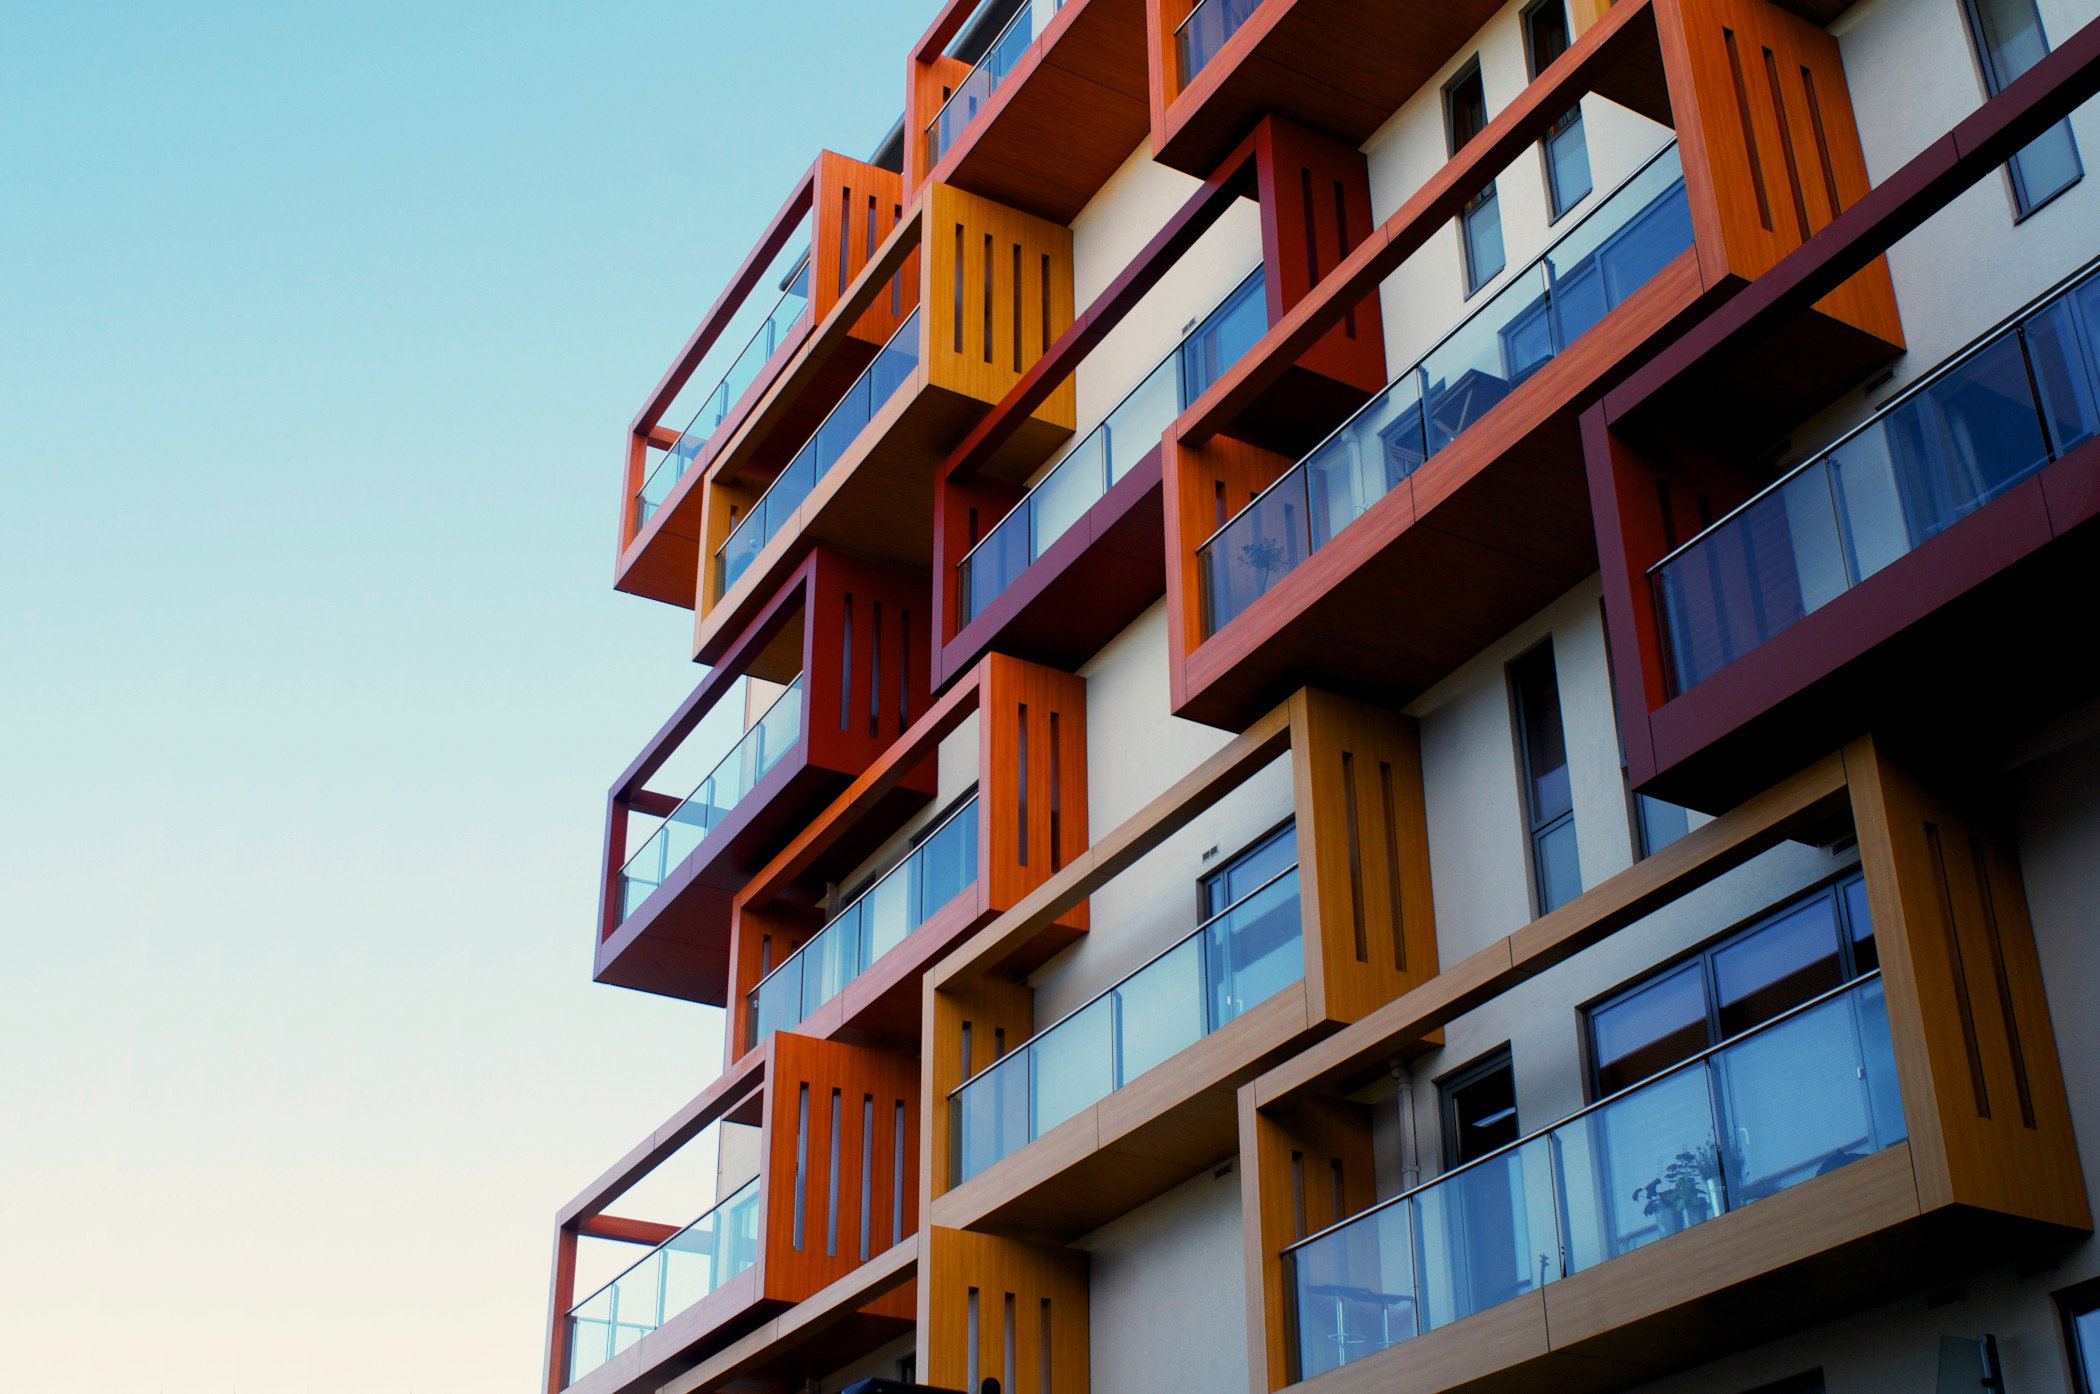 Apartment rents in some cities have risen as steeply as 20% year over year. (iStock)